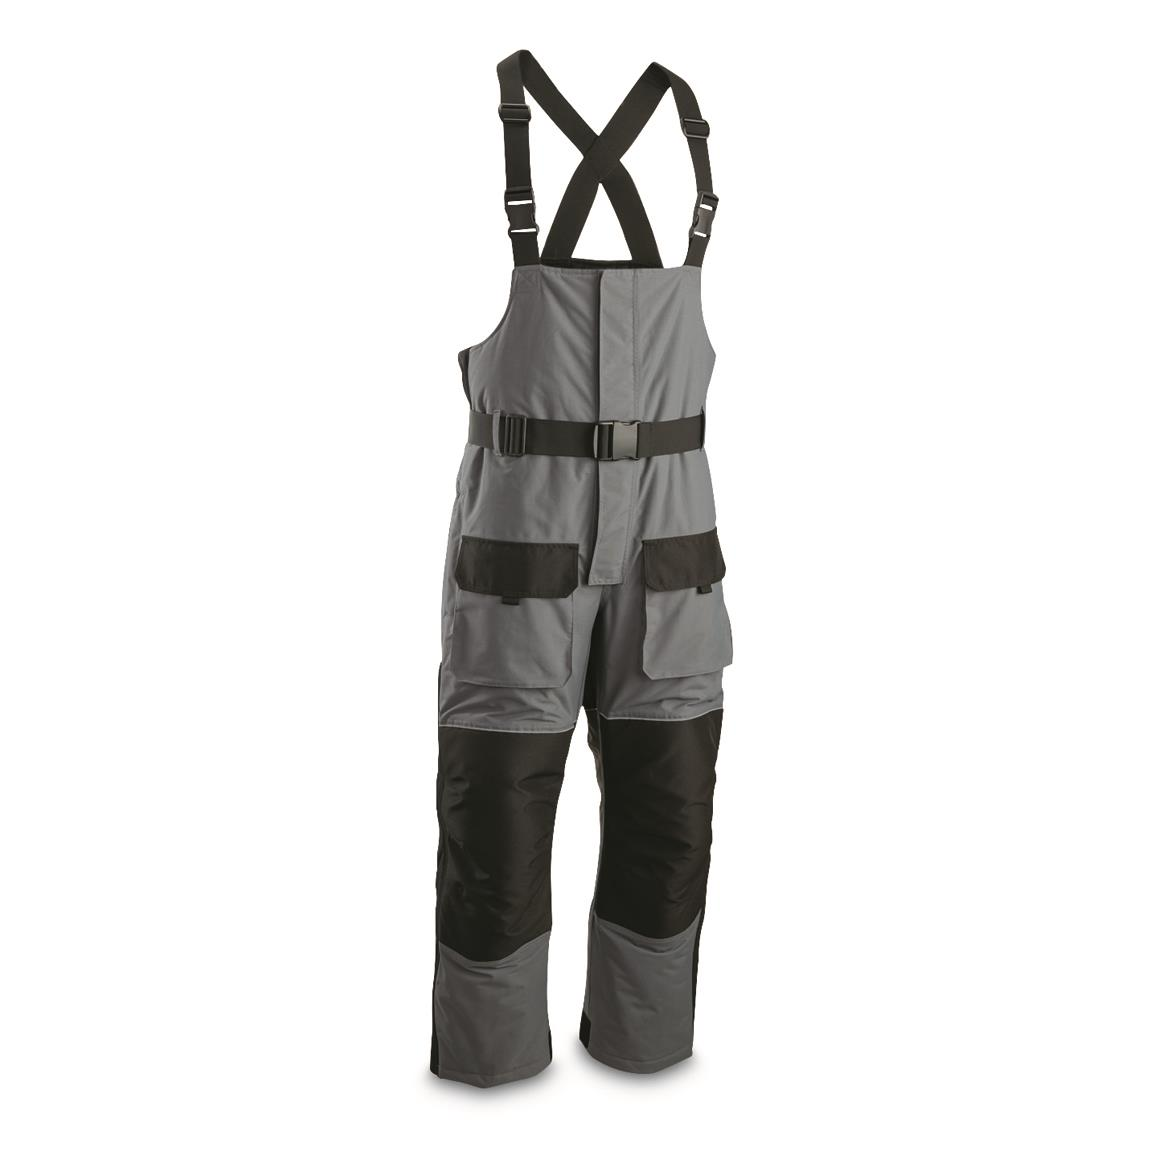 Guide Gear Men's Barrier Ice Waterproof Insulated Bib Overalls, Black/gray